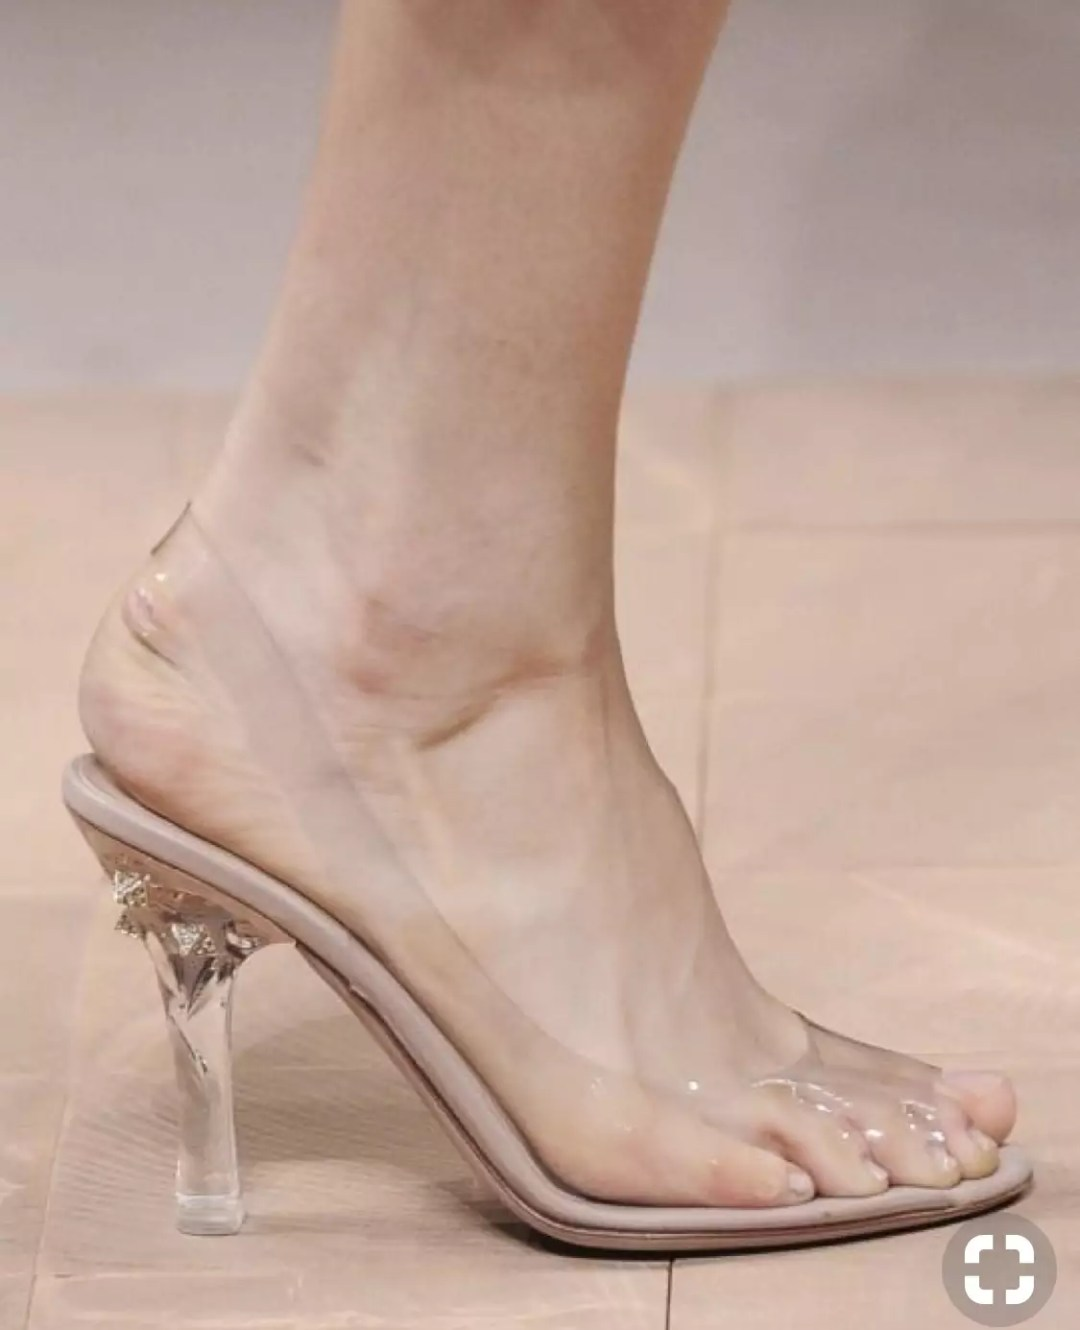 valentino clear shoes valentino see through shoes 2013 collection alley girl trend review - Who did Design the Very First Clear Transparent Shoes?